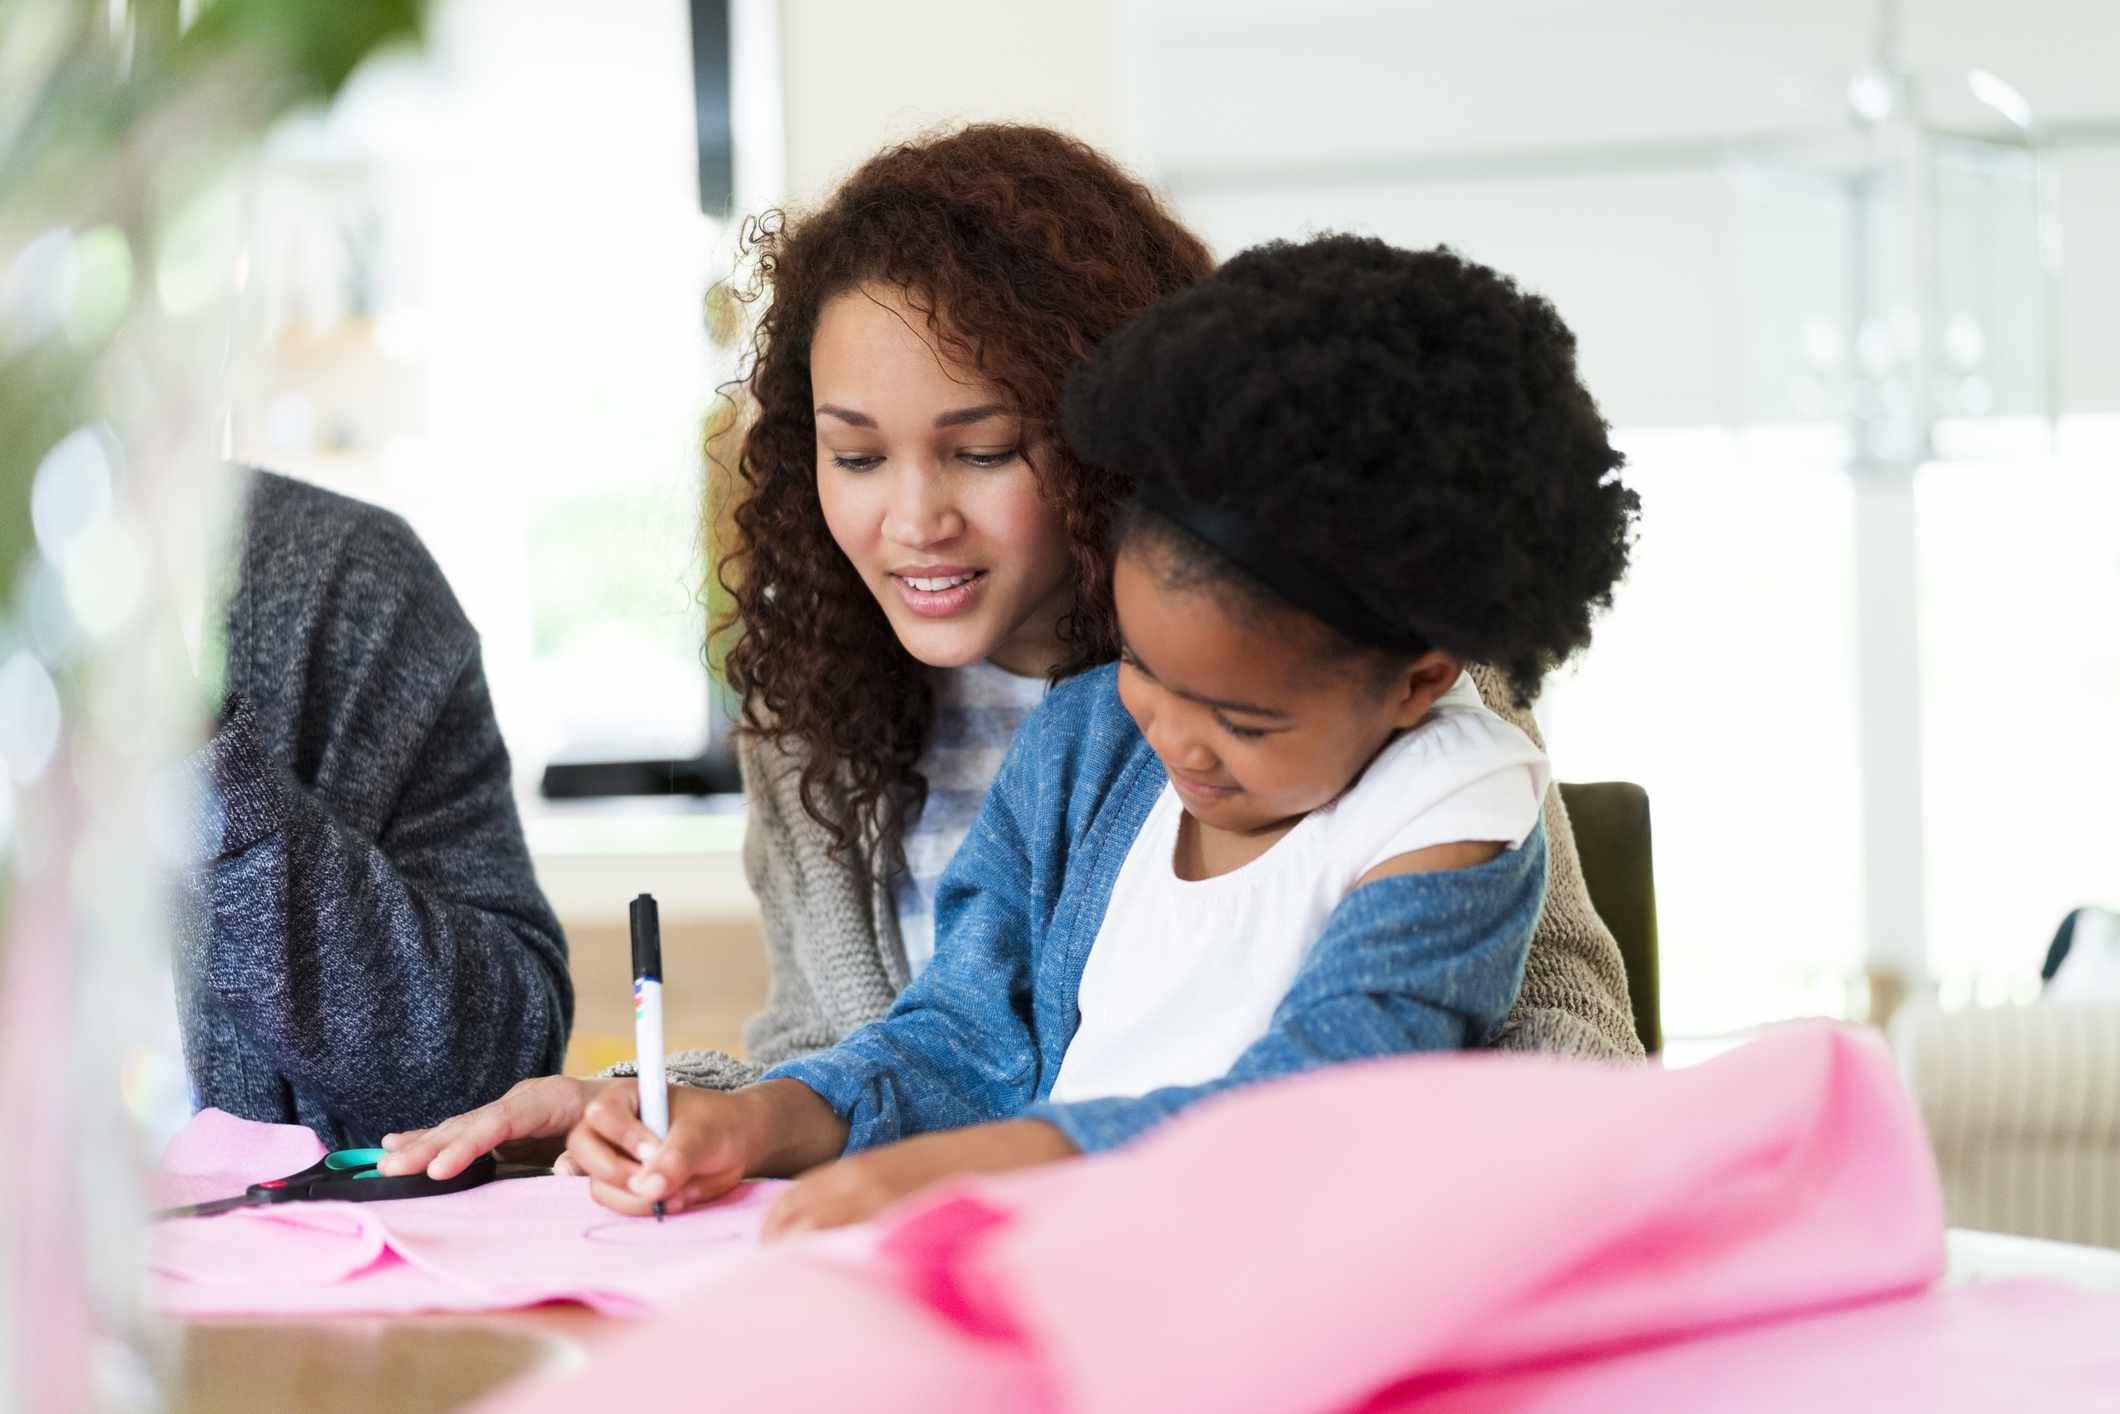 Woman looking at girl drawing on fabric at home